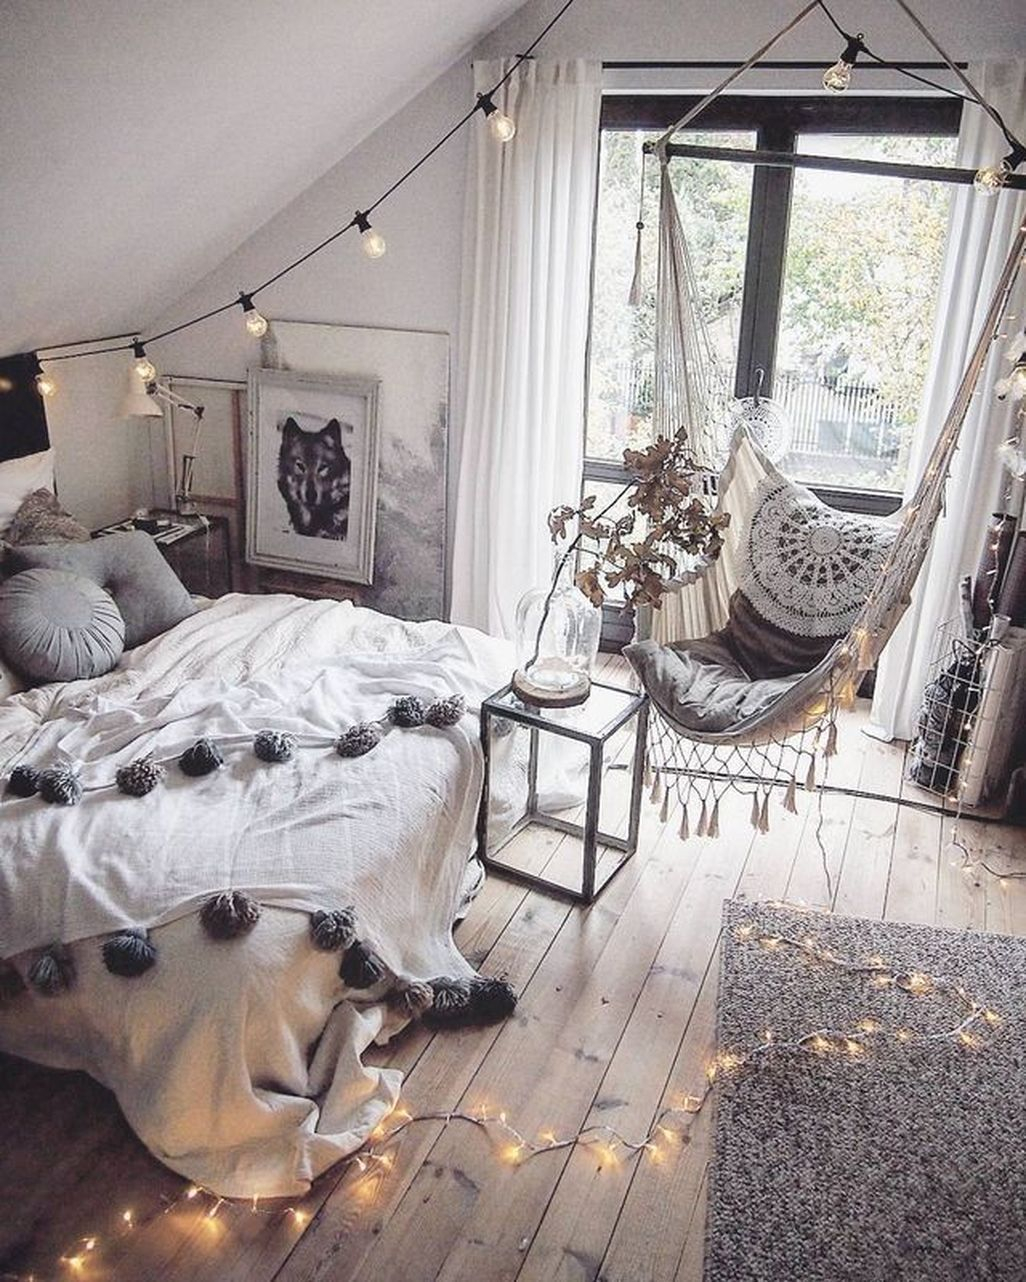 Totally smart diy college apartment decoration ideas on a budget 01